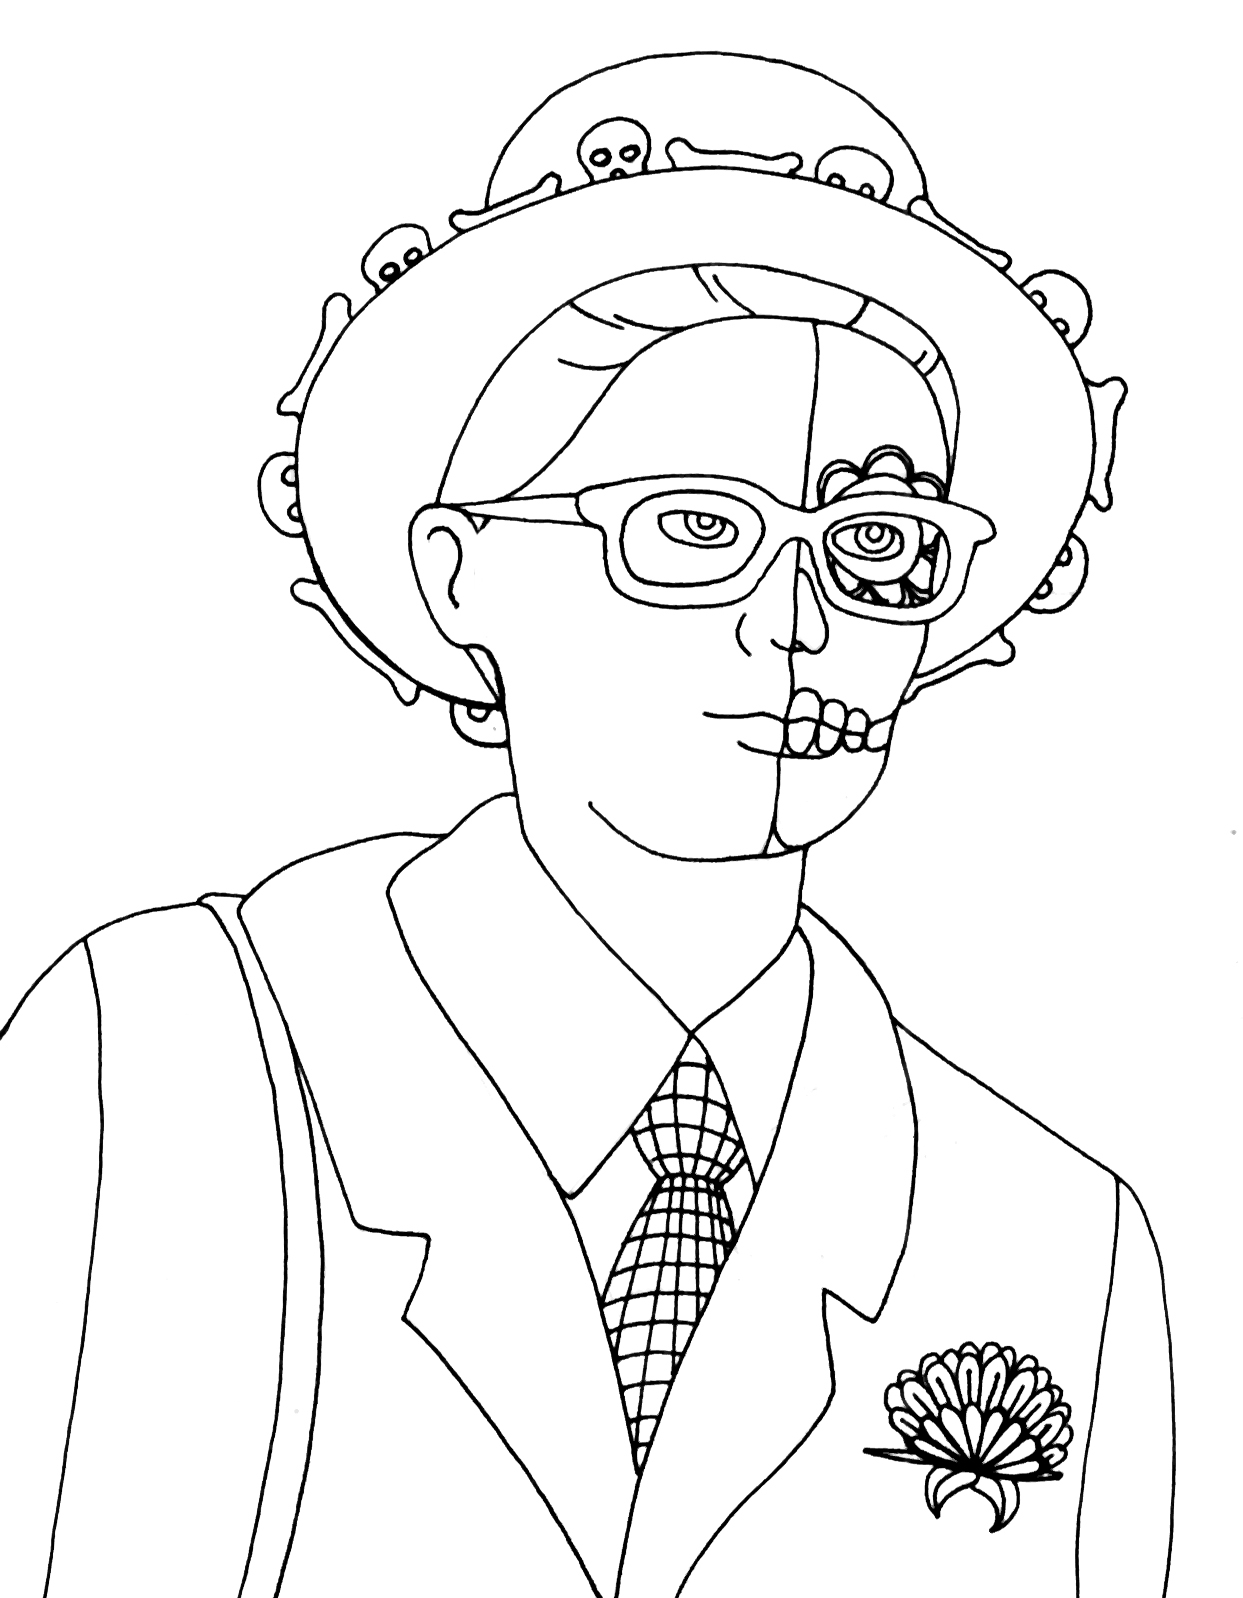 coloring page people pin by desiree on hair bow people coloring pages cute page coloring people